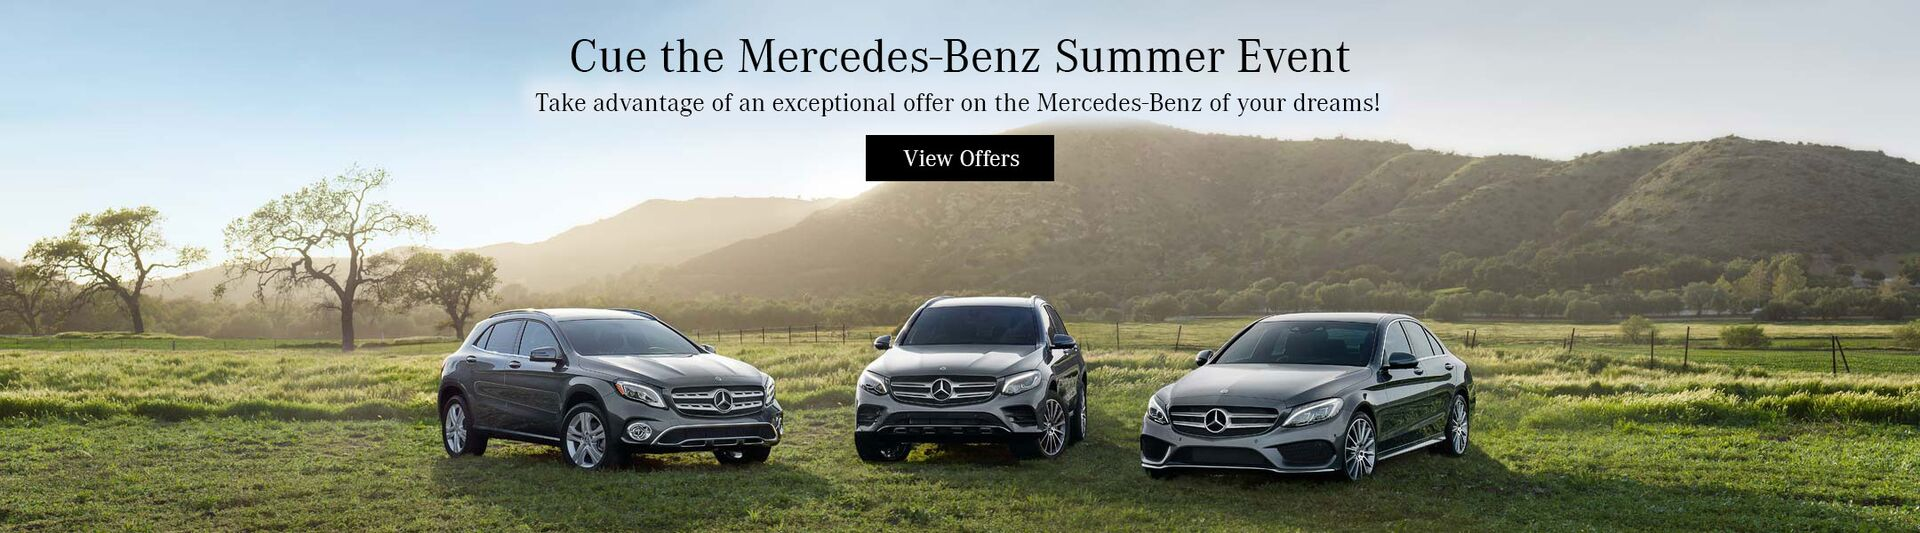 mercedes benz dealership in salisbury md mercedes benz of salisbury. Black Bedroom Furniture Sets. Home Design Ideas